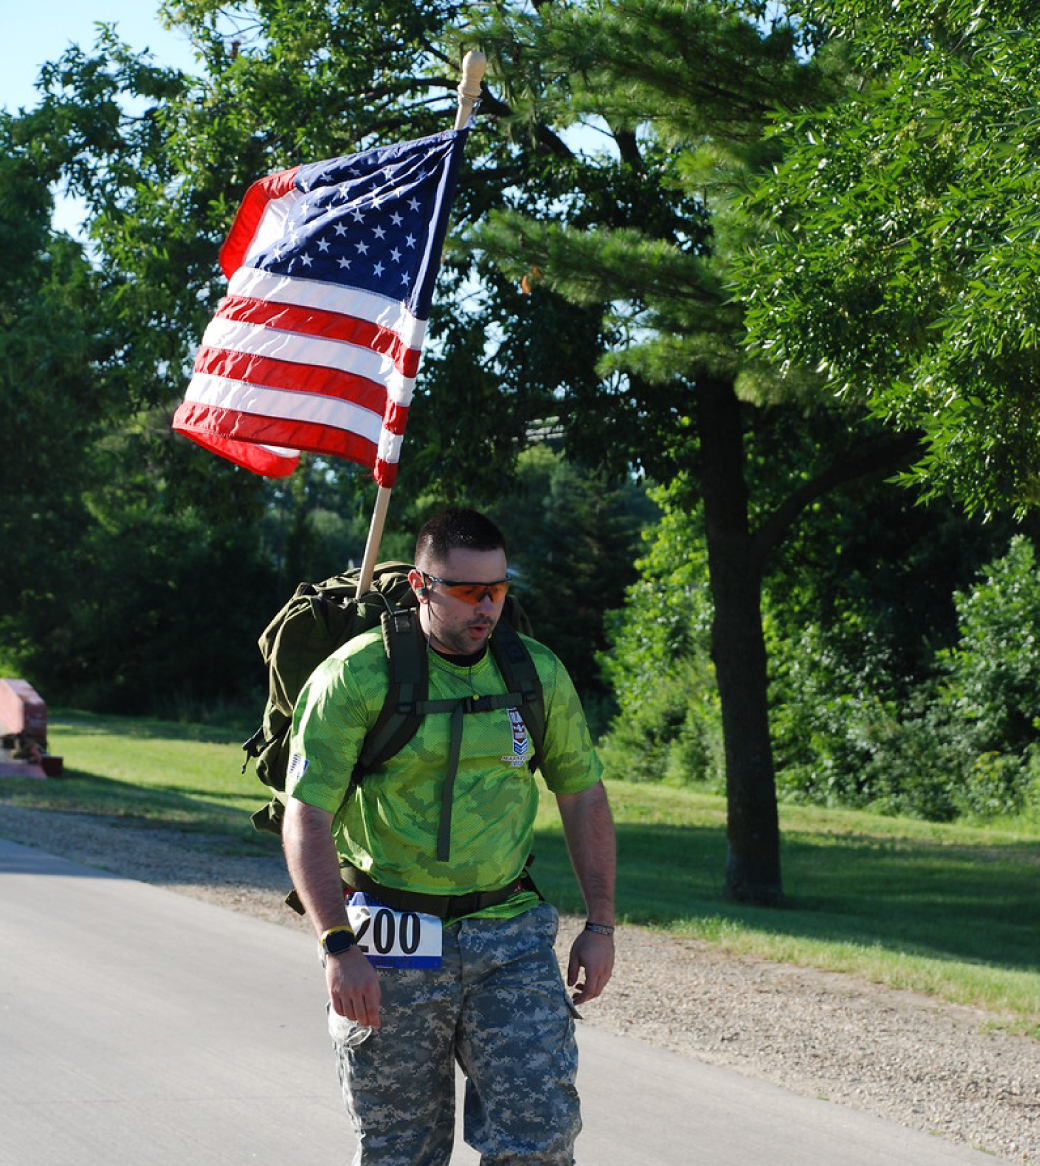 Runner carries the American Flag during the Run 4 Troops marathon